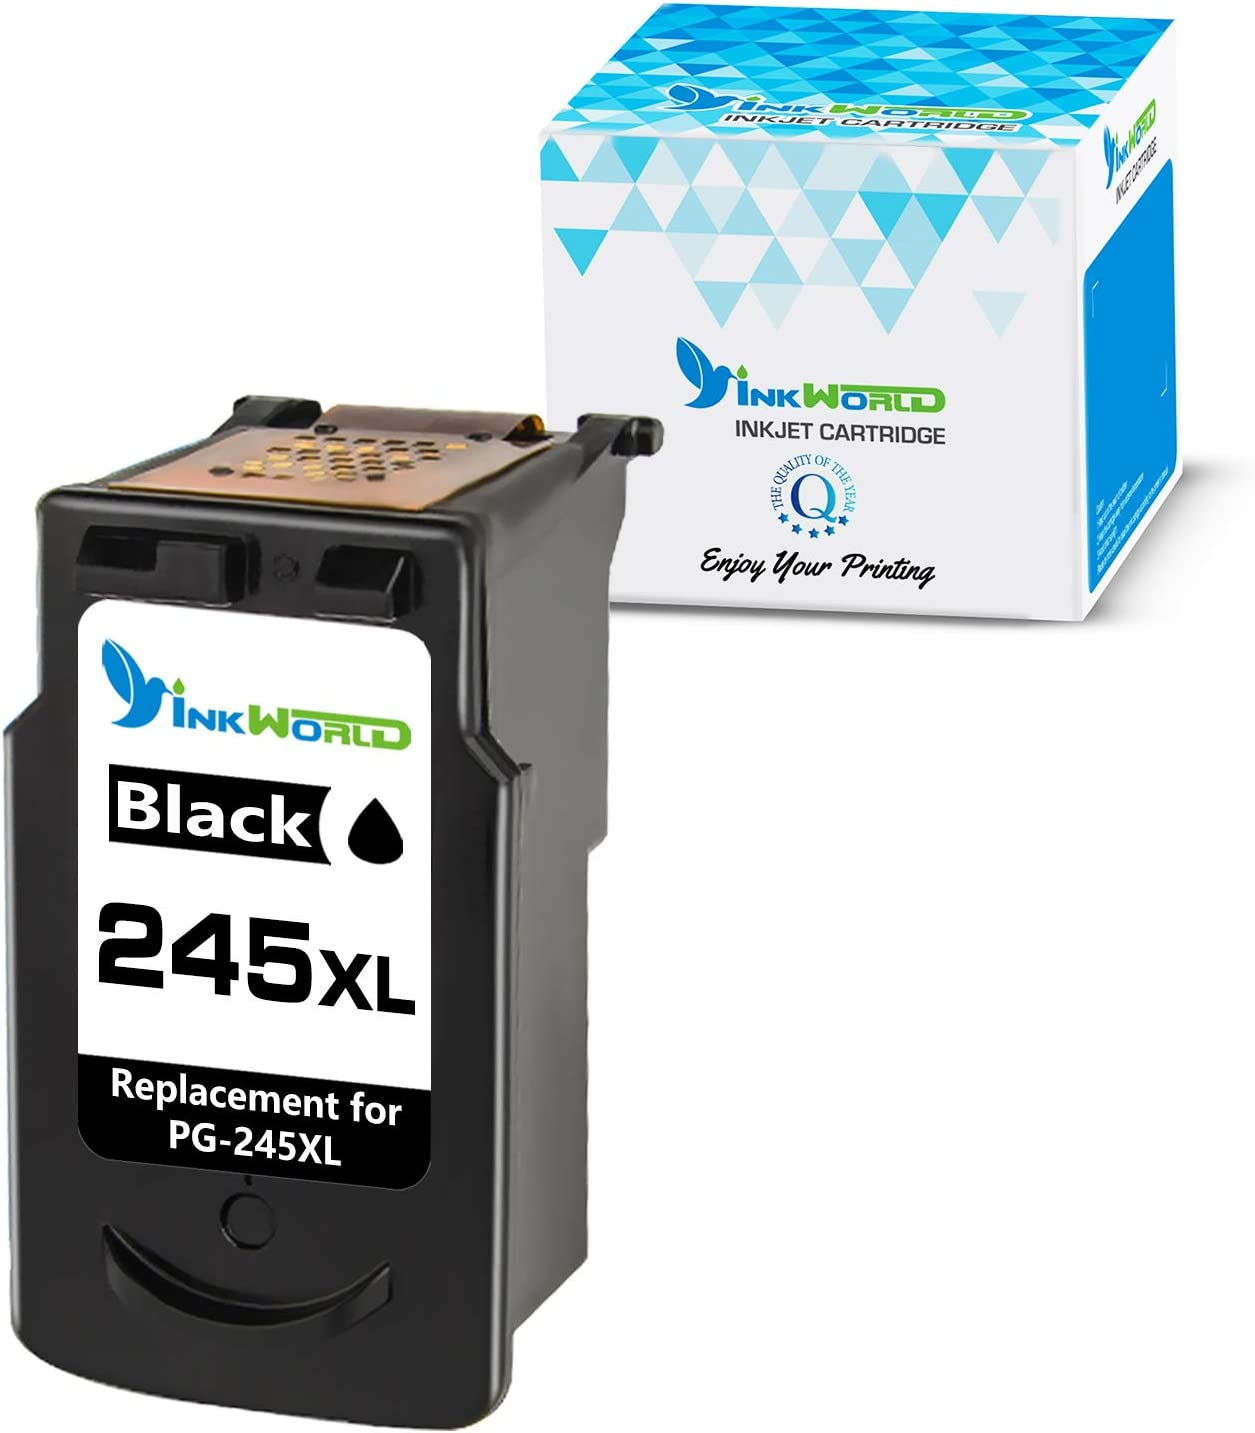 InkWorld Remanufactured Ink Cartridge Replacement for Canon PG-245XL 245 XL Use with Pixma MG3022 MG2522 TR4520 TR4522 MG2922 MG2920 TS202 MX492 MX490 iP2820 TS302 MG2520 MG2525 Printer (1 Black)